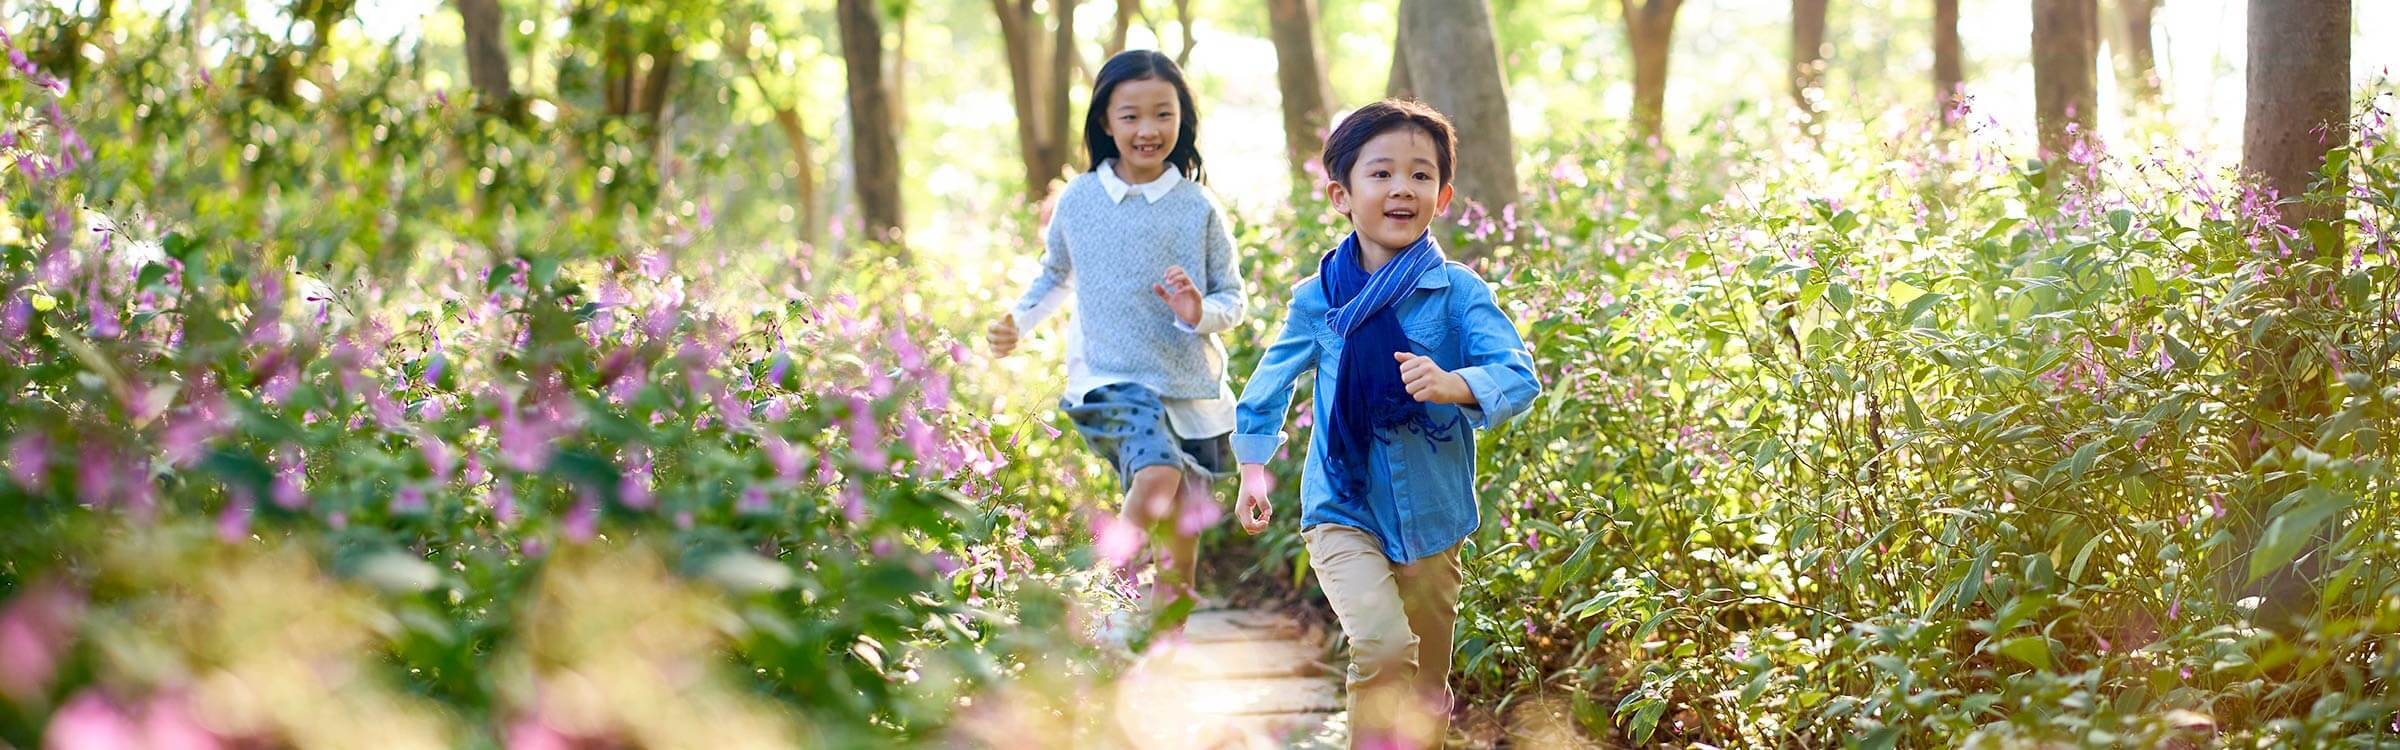 Happy children running in the forest